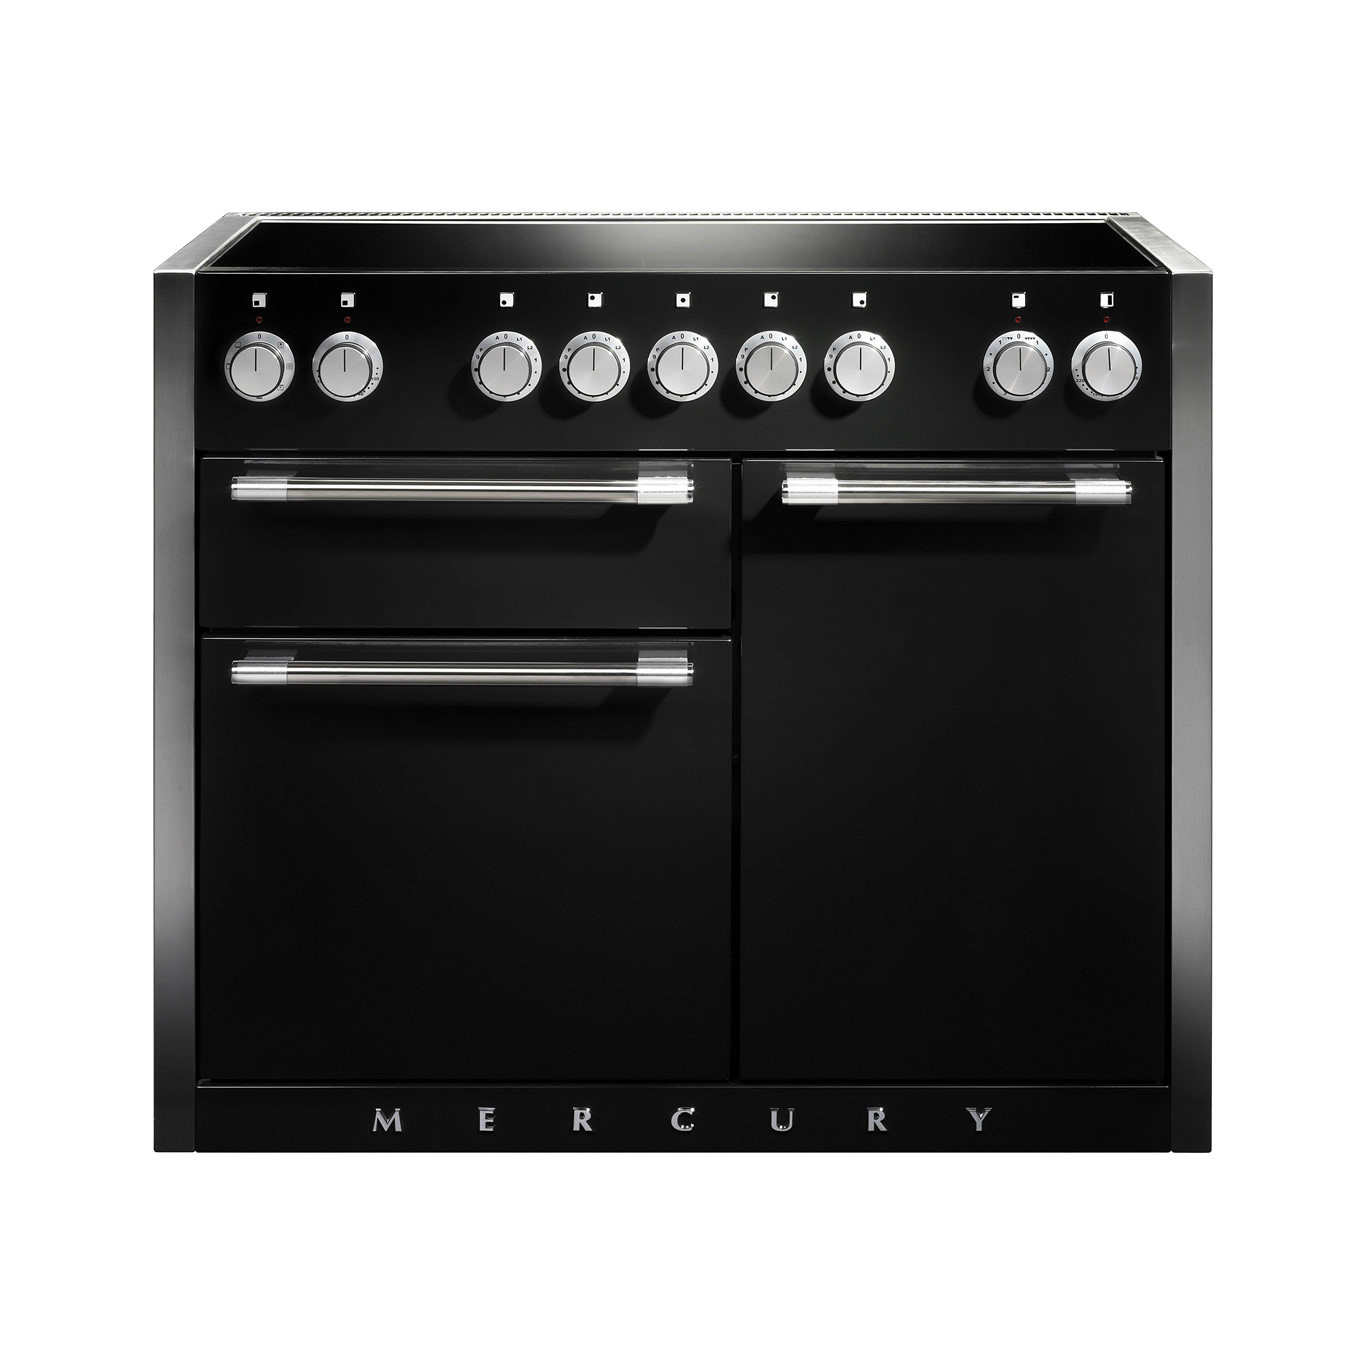 Mercury MCY1082EI Induction Ash Black Range Cooker